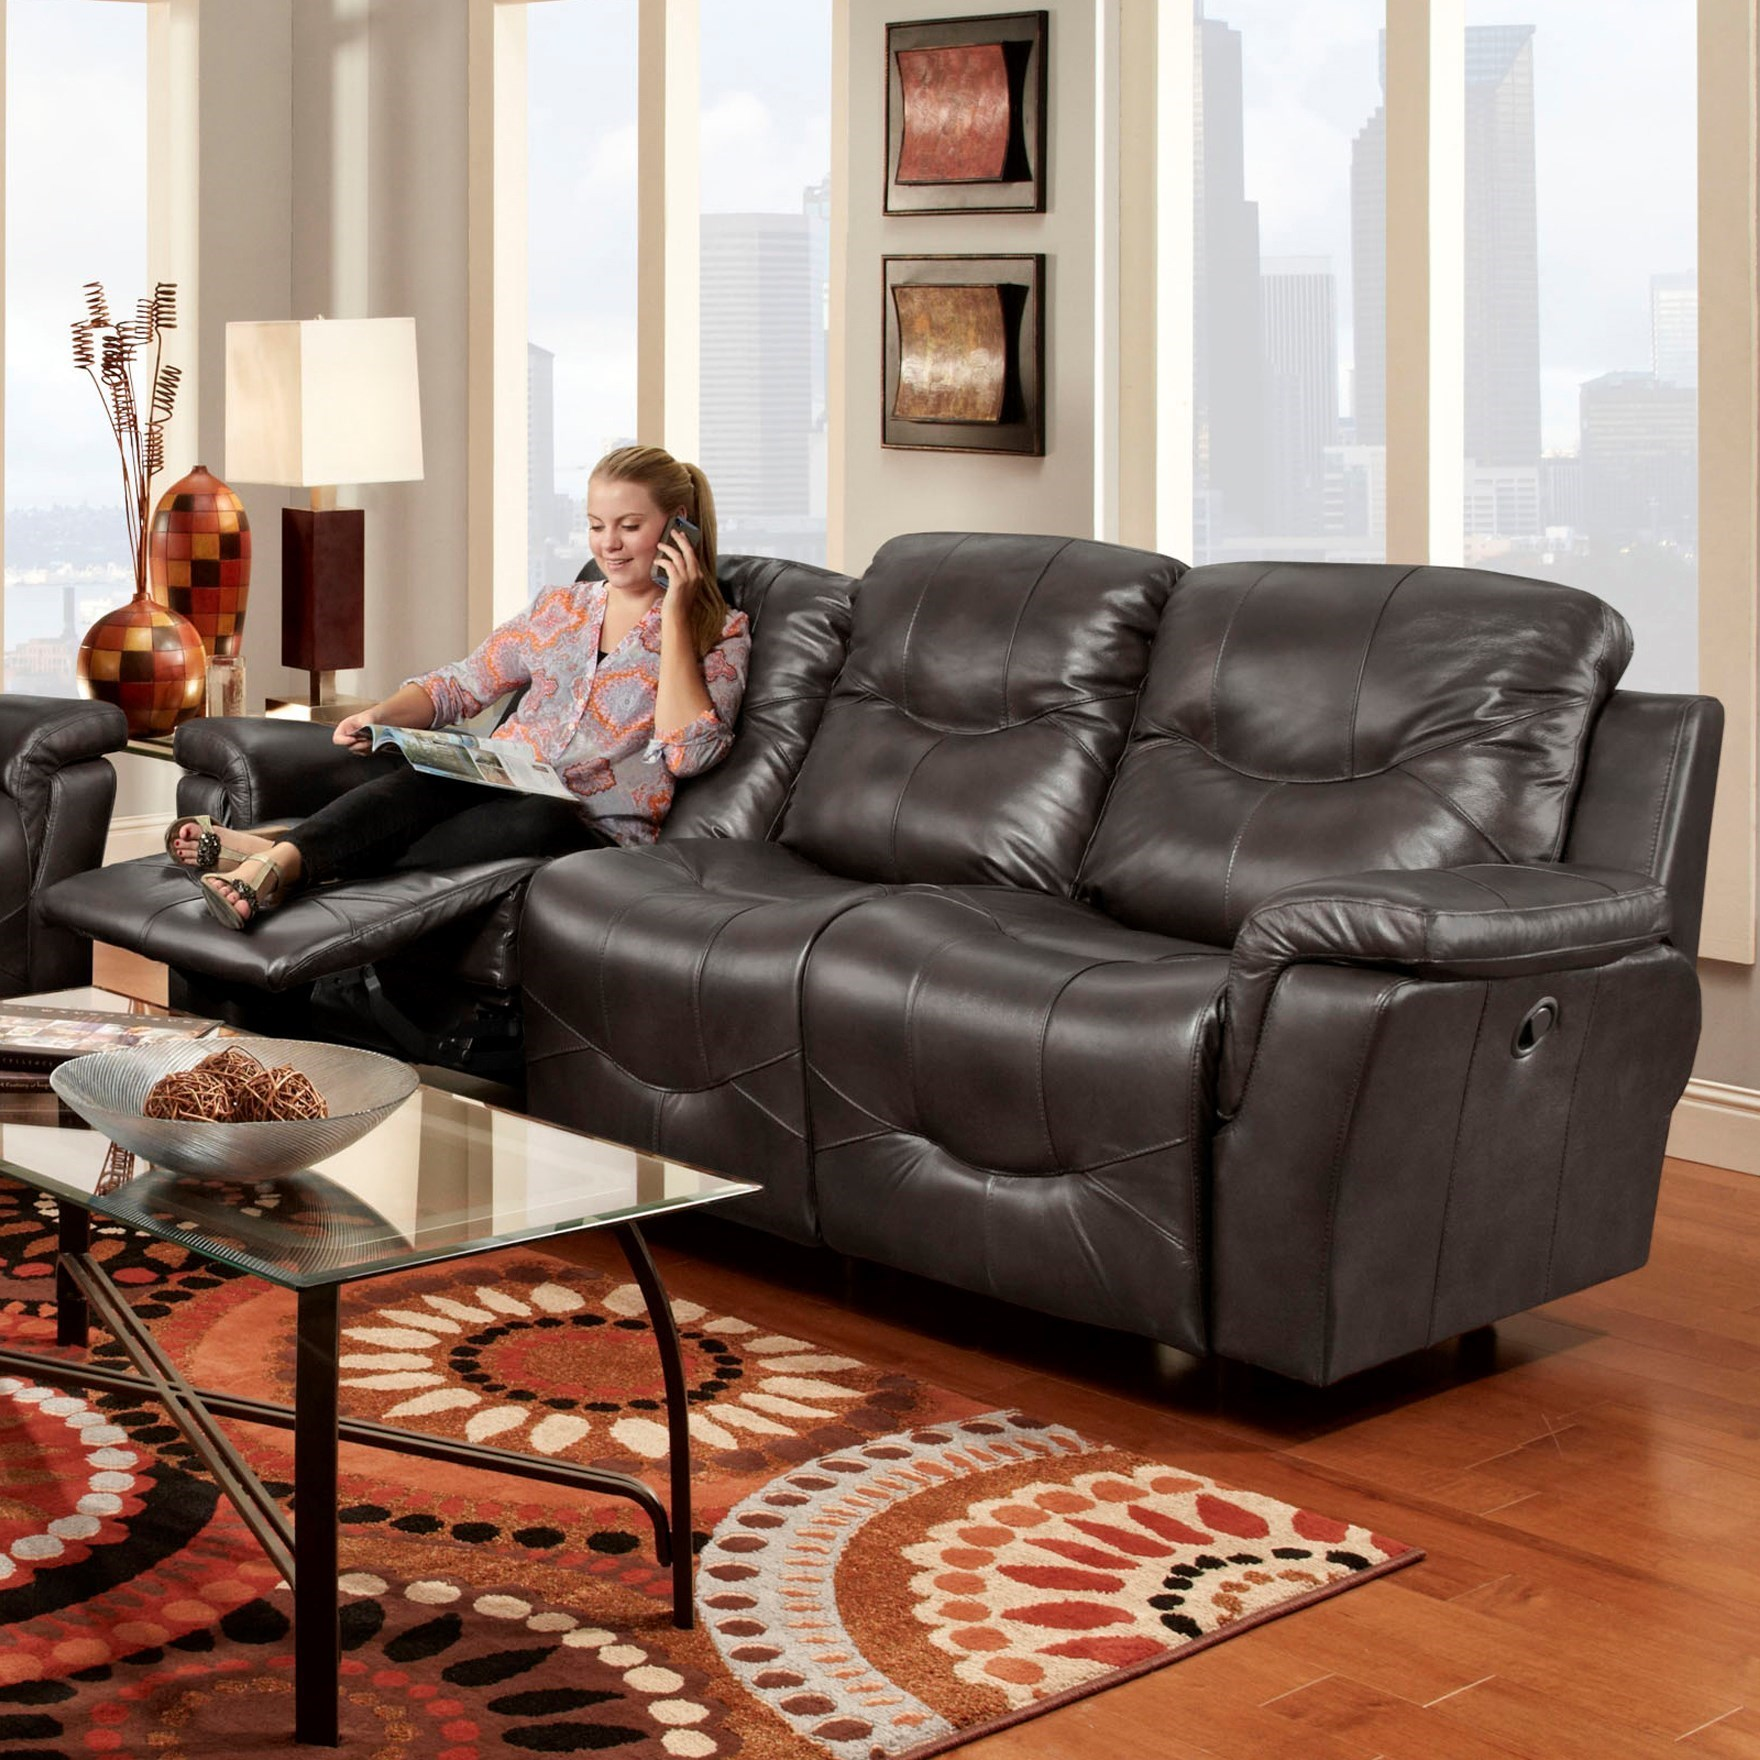 Franklin Milano 41342 Reclining Sofa John V Schultz Furniture Reclining Sofa